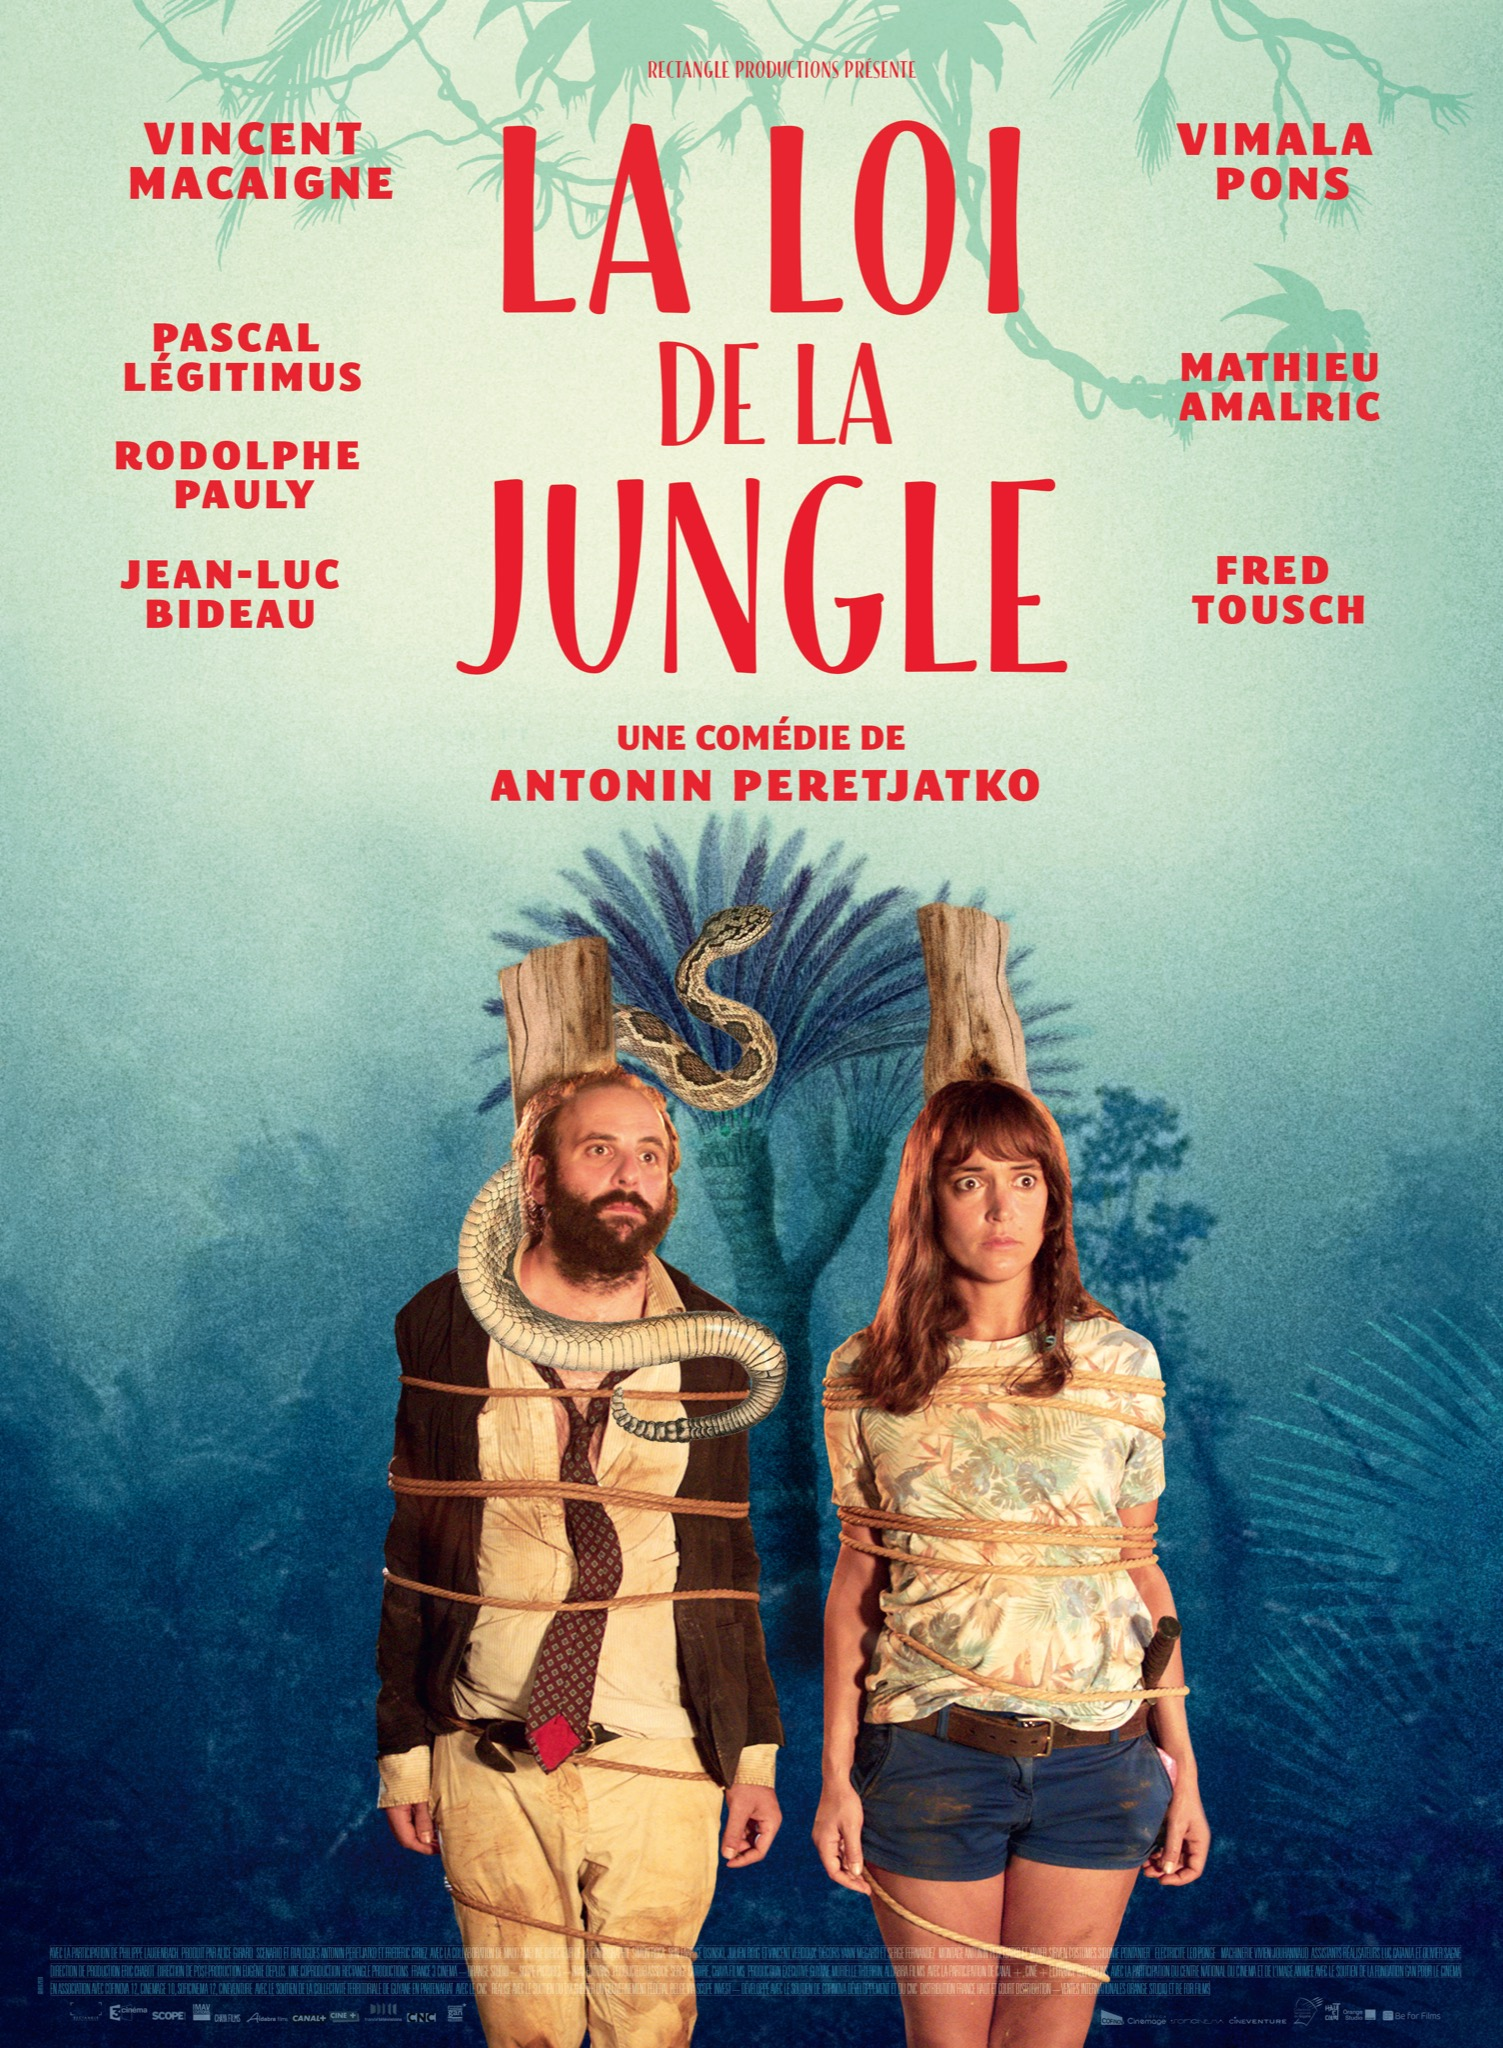 La Loi de la jungle image affiche